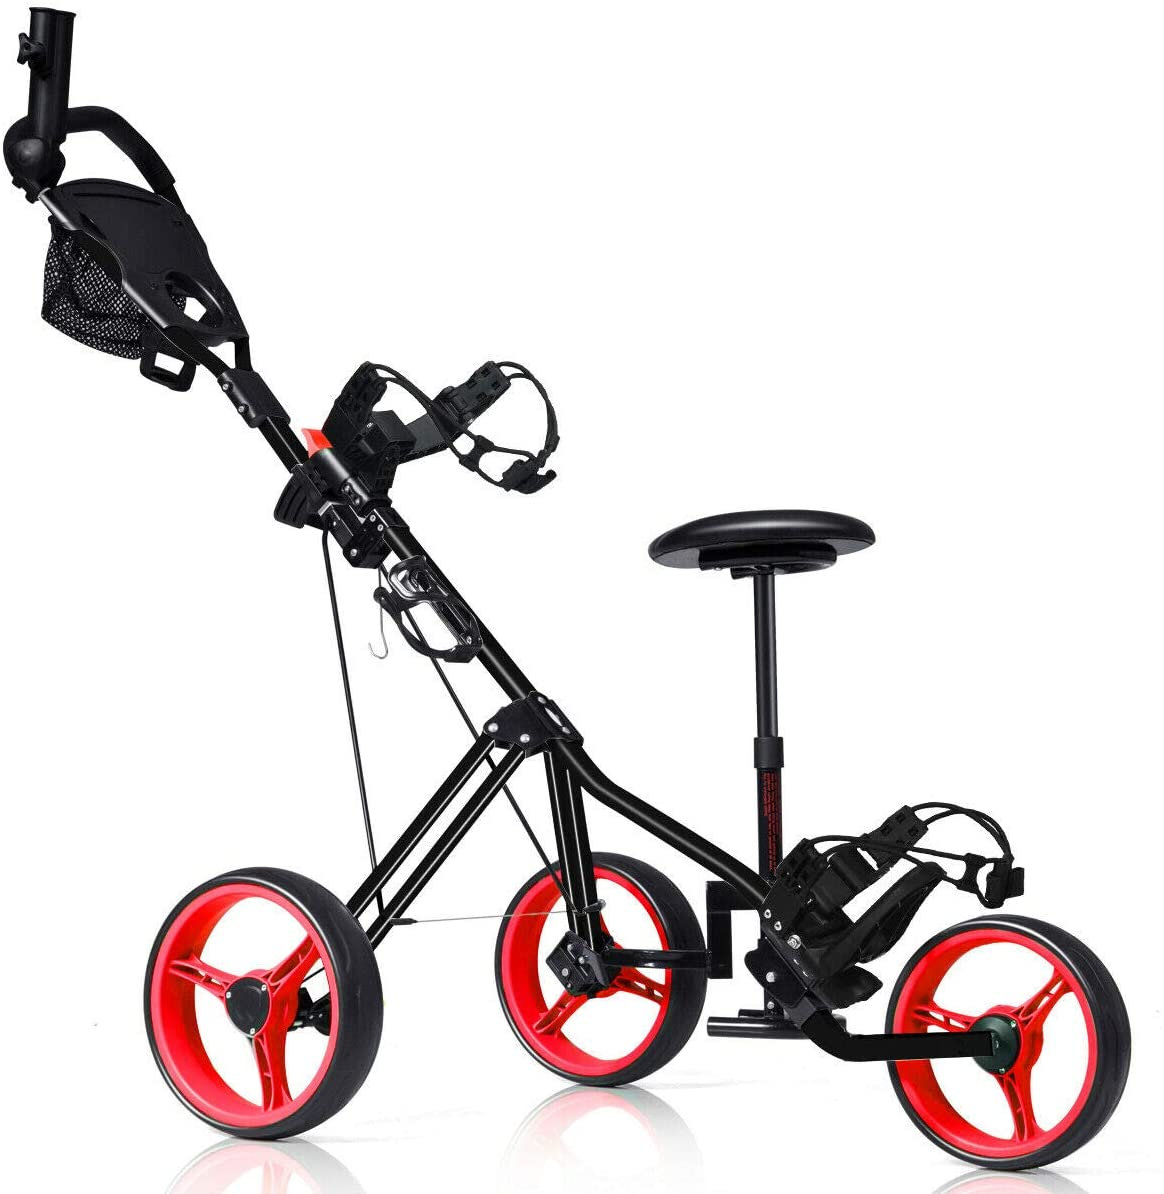 Tangkula Lockable Golf Push Cart